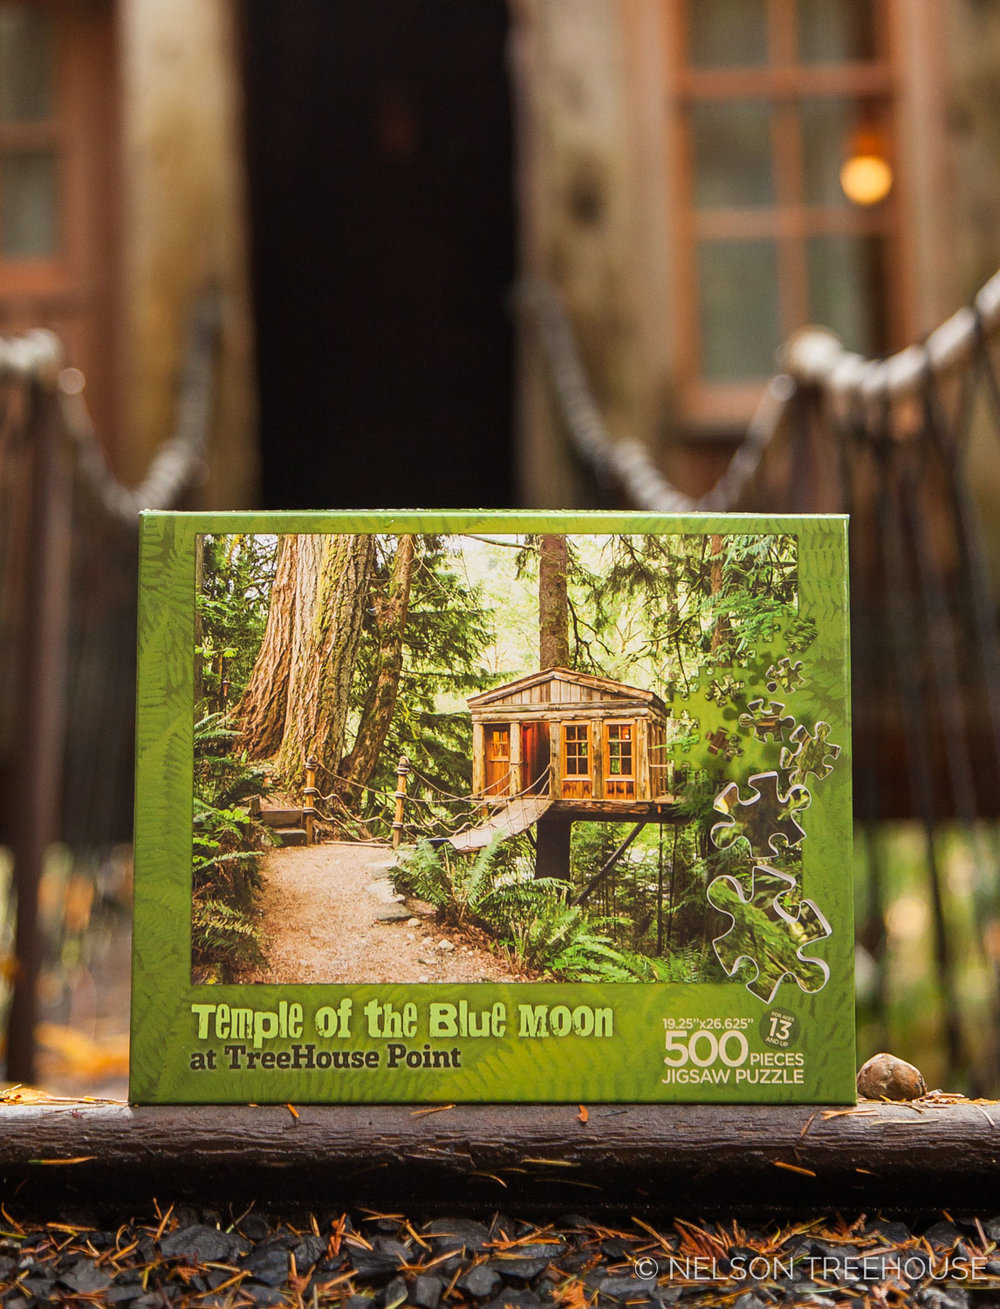 Nelson Treehouse Puzzle